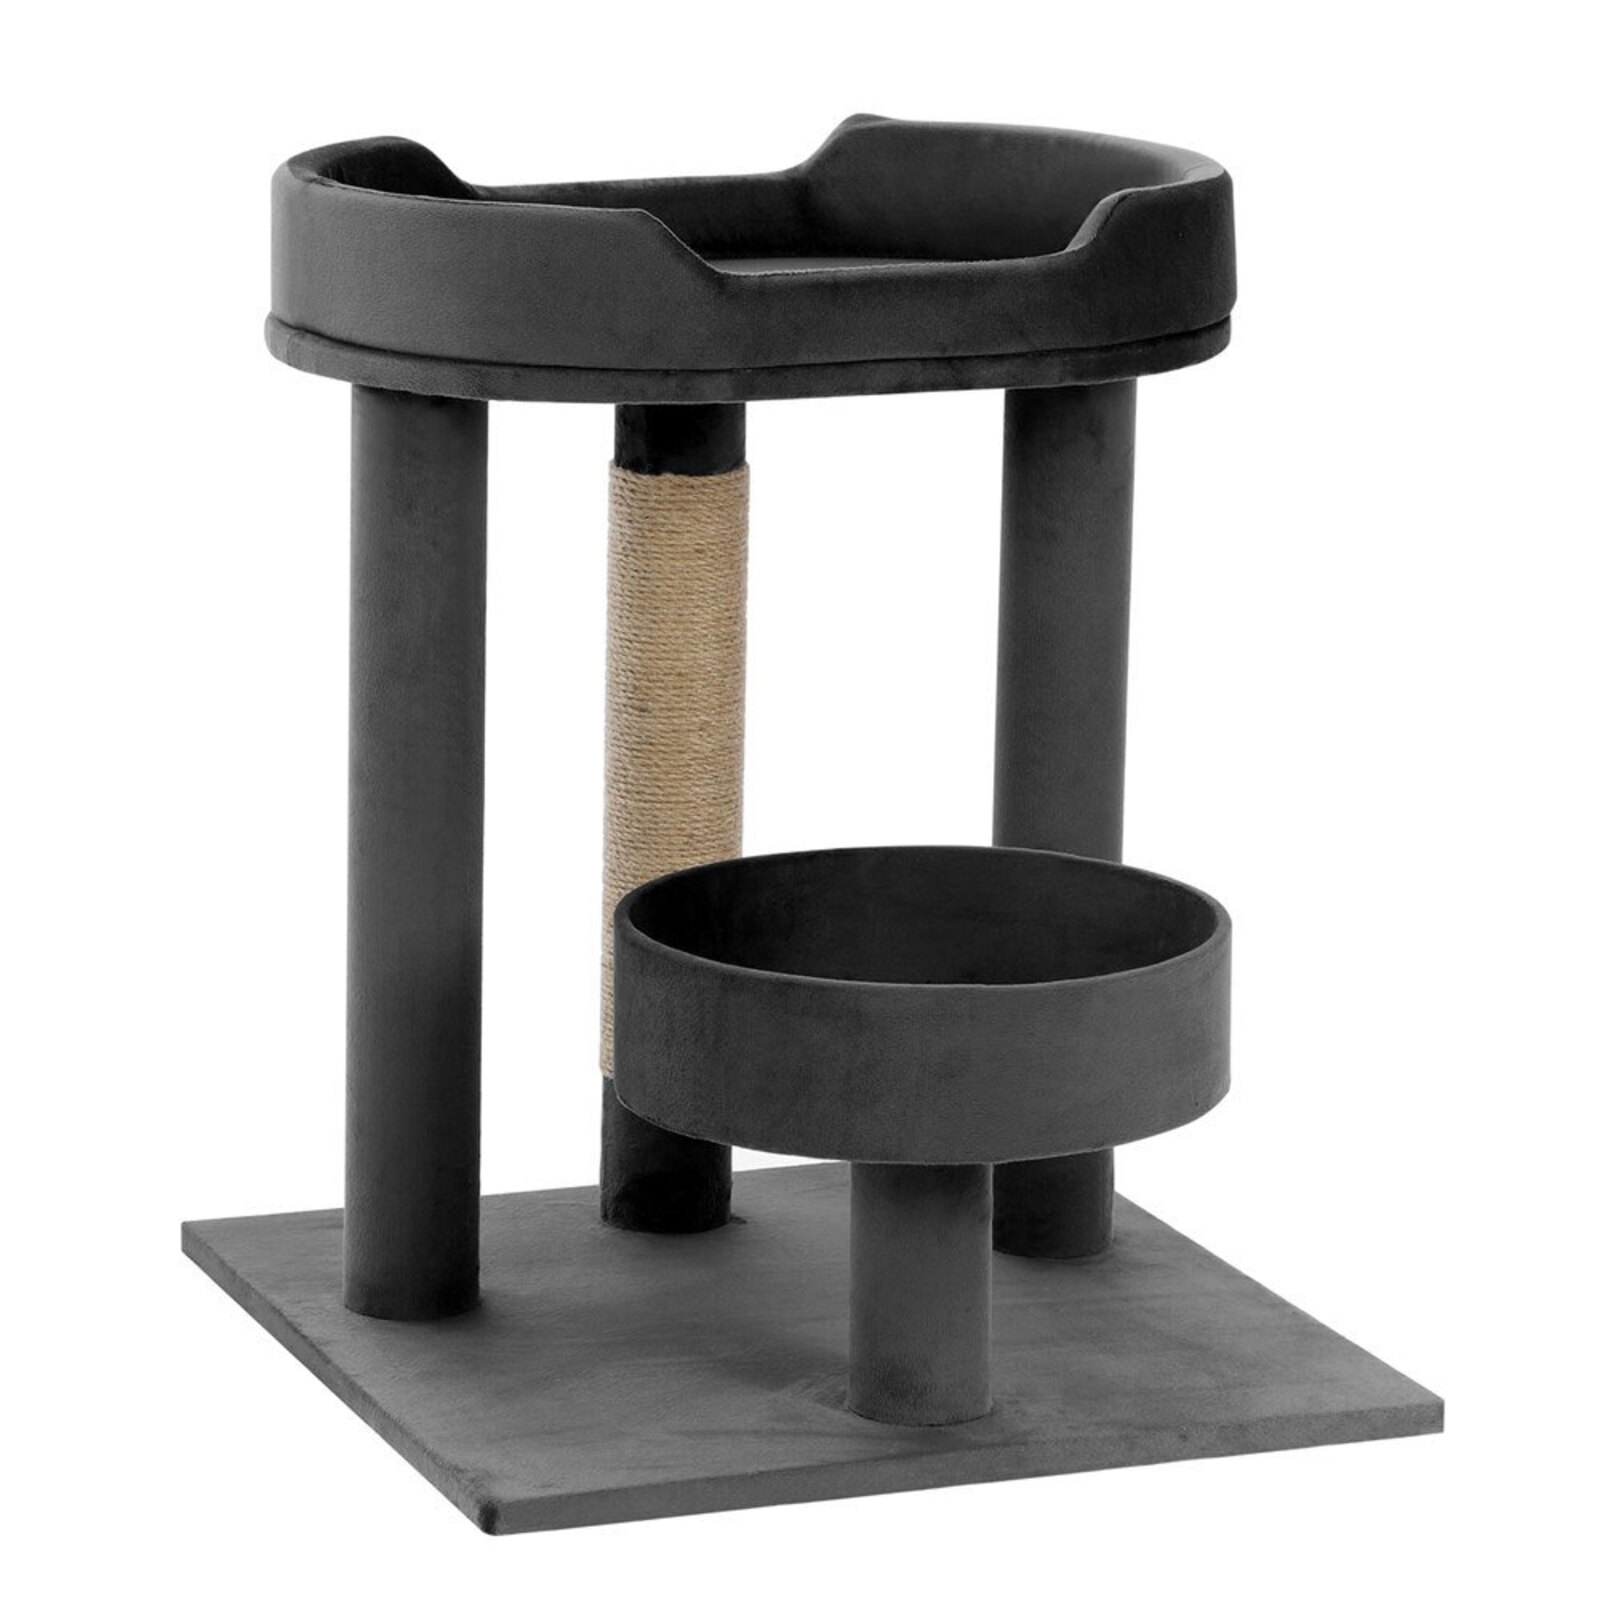 Paws & Claws 58.5cm Catsby Kew Perch/Bed Cat/Kitten Scratching Post Charcoal